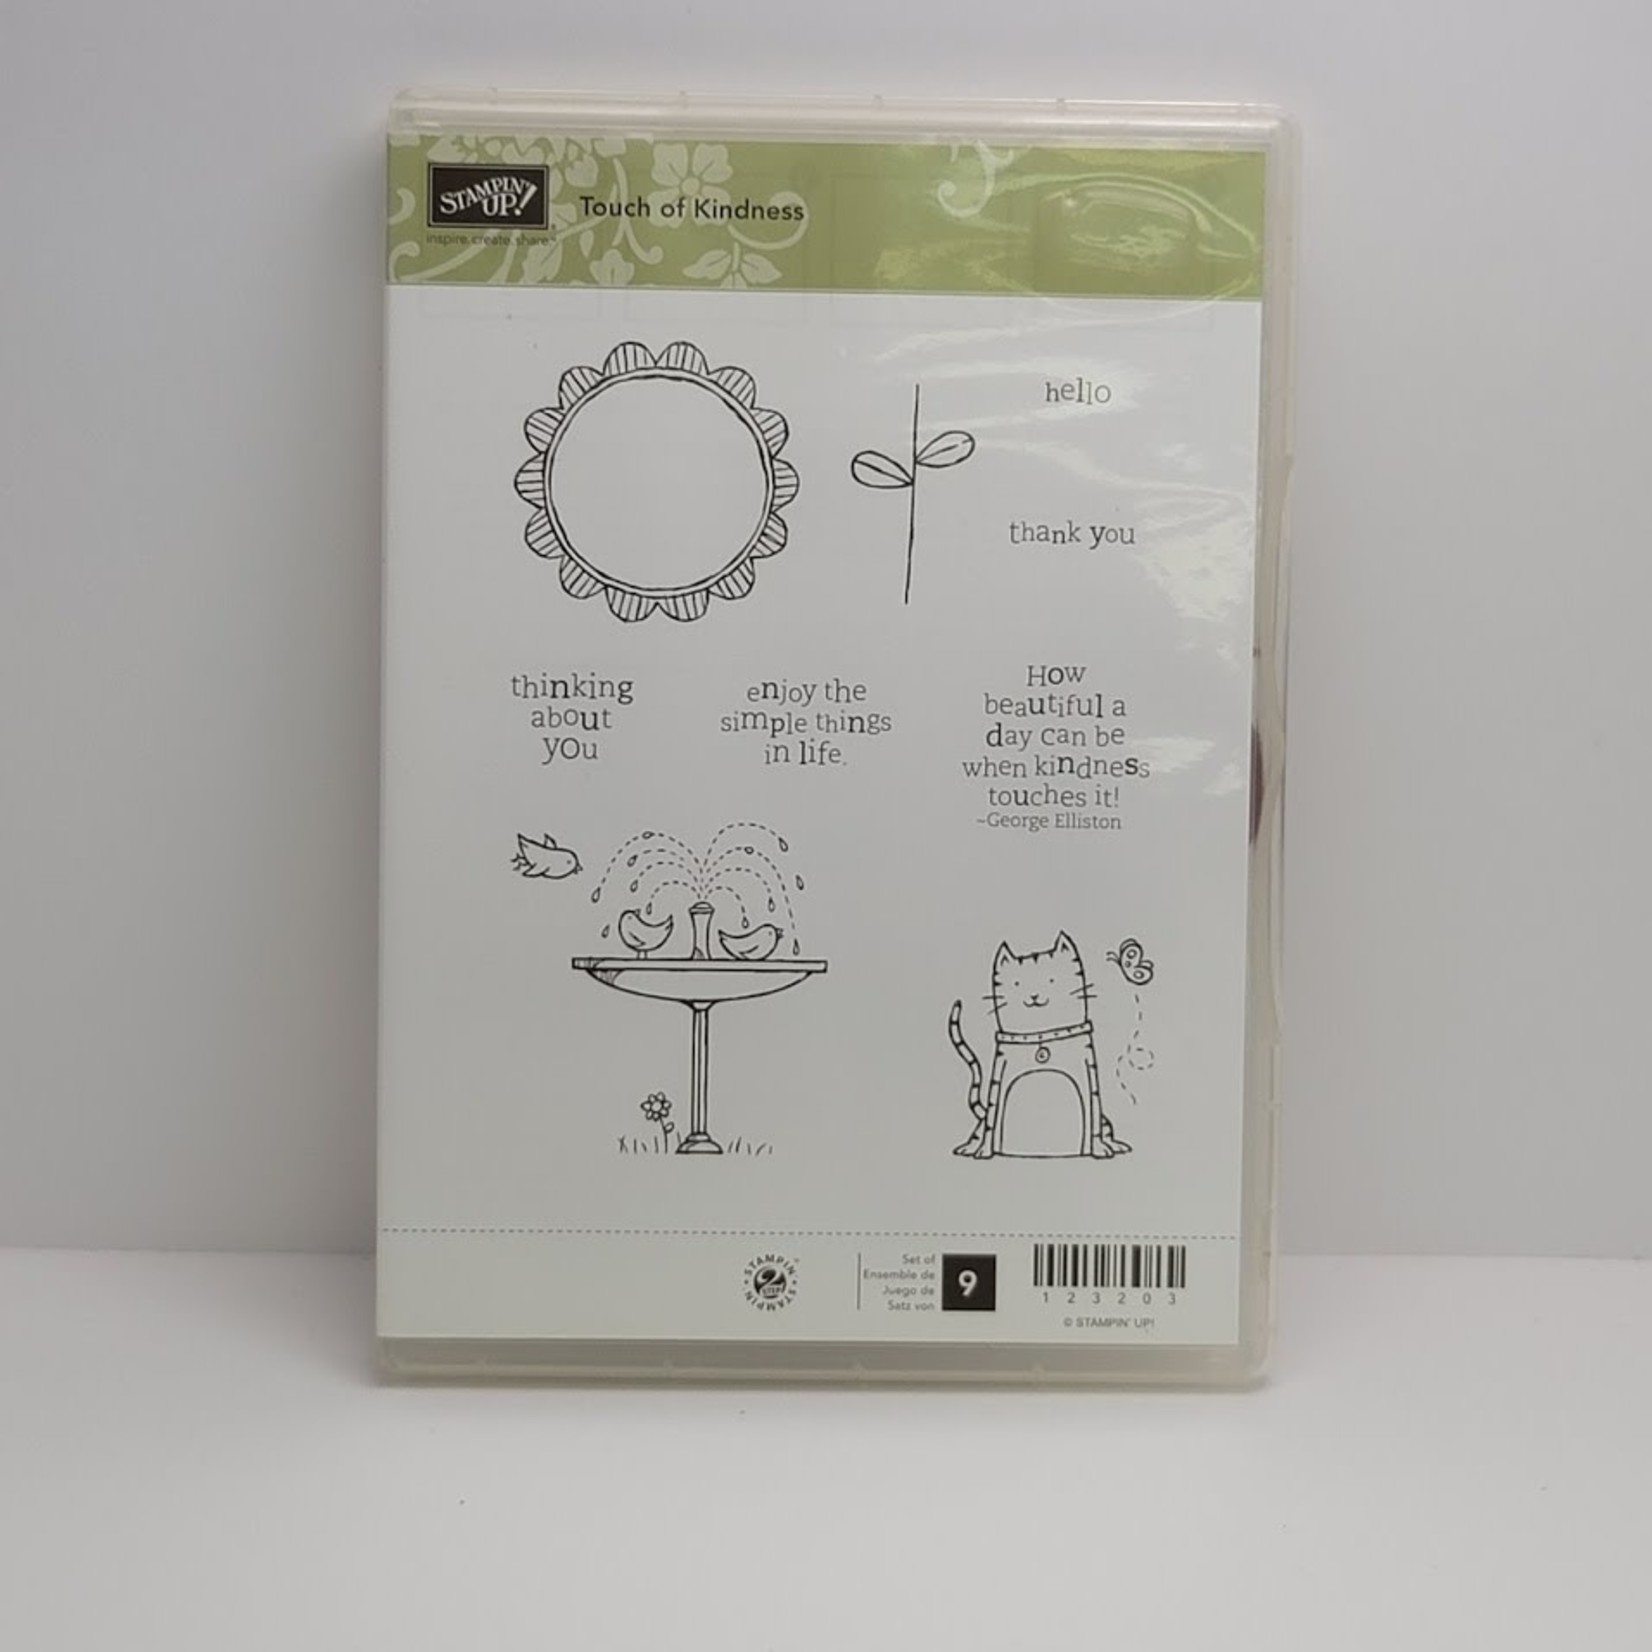 Stampin' Up Stampin' up - Cling Stamps - Touch of Kindness